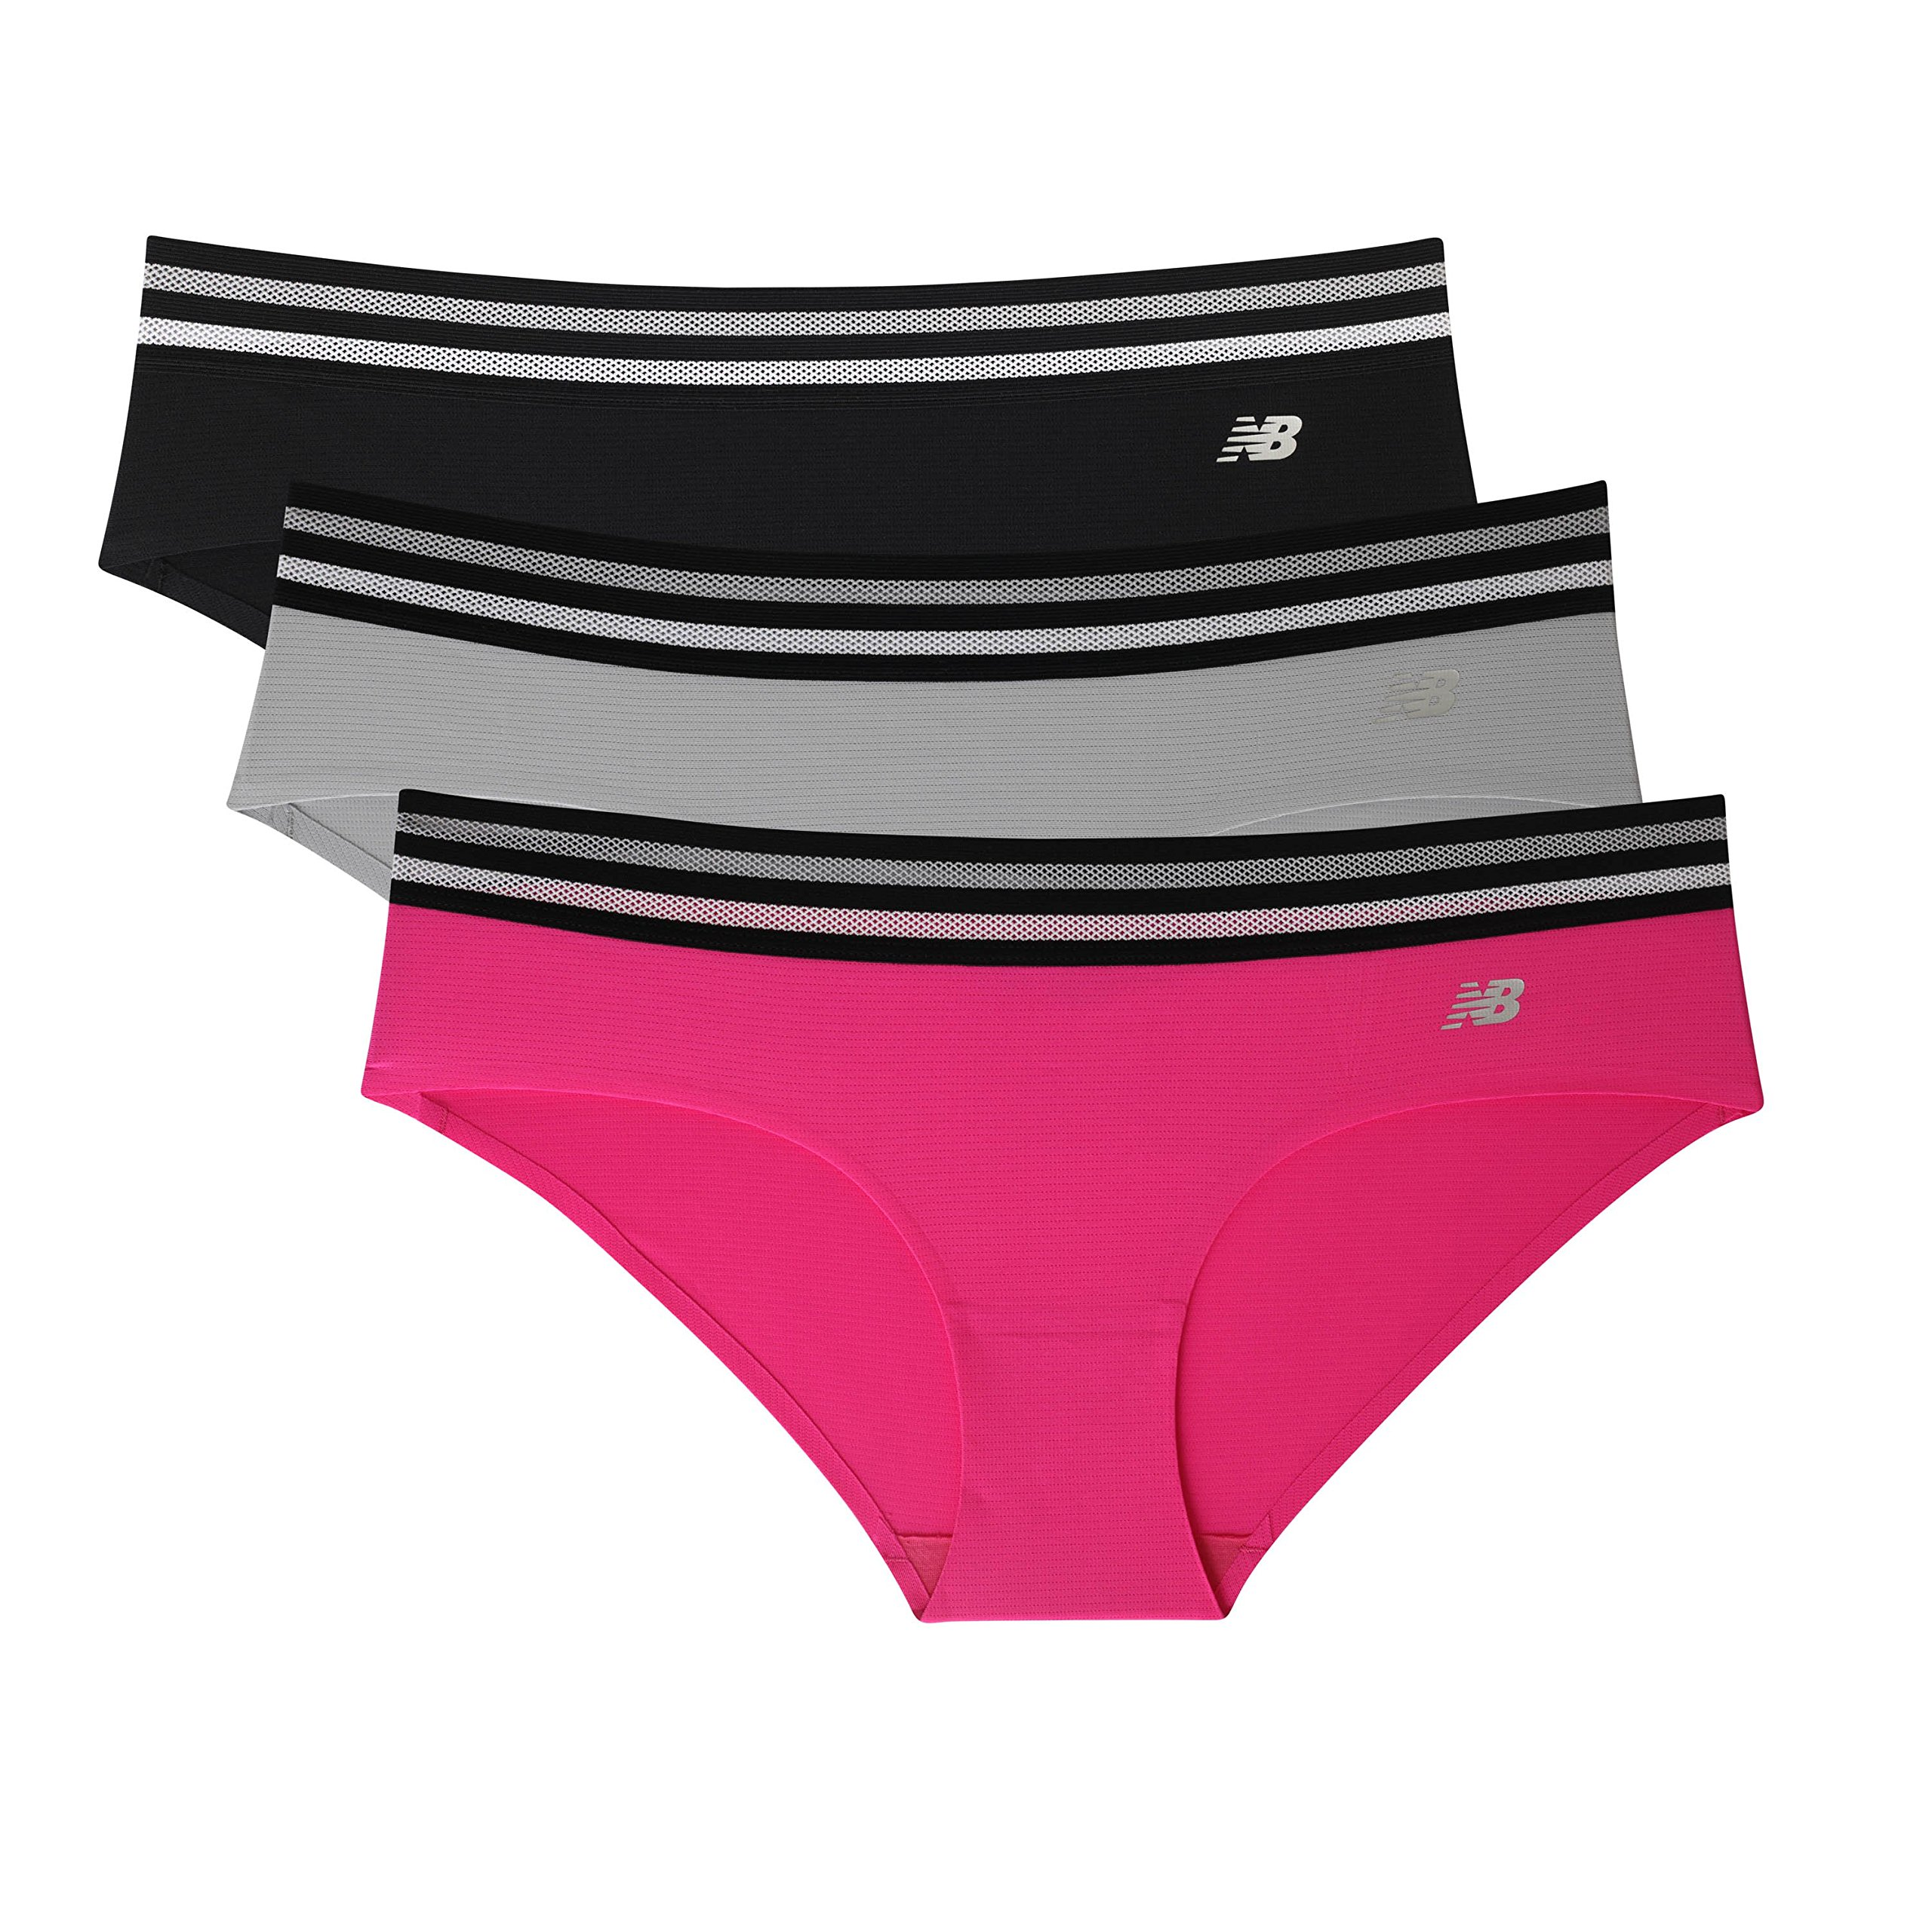 New Balance Womens Athletic Mesh Hipster Underwear (Pack Of 3),Pink/Silver/Black,X-Large/16